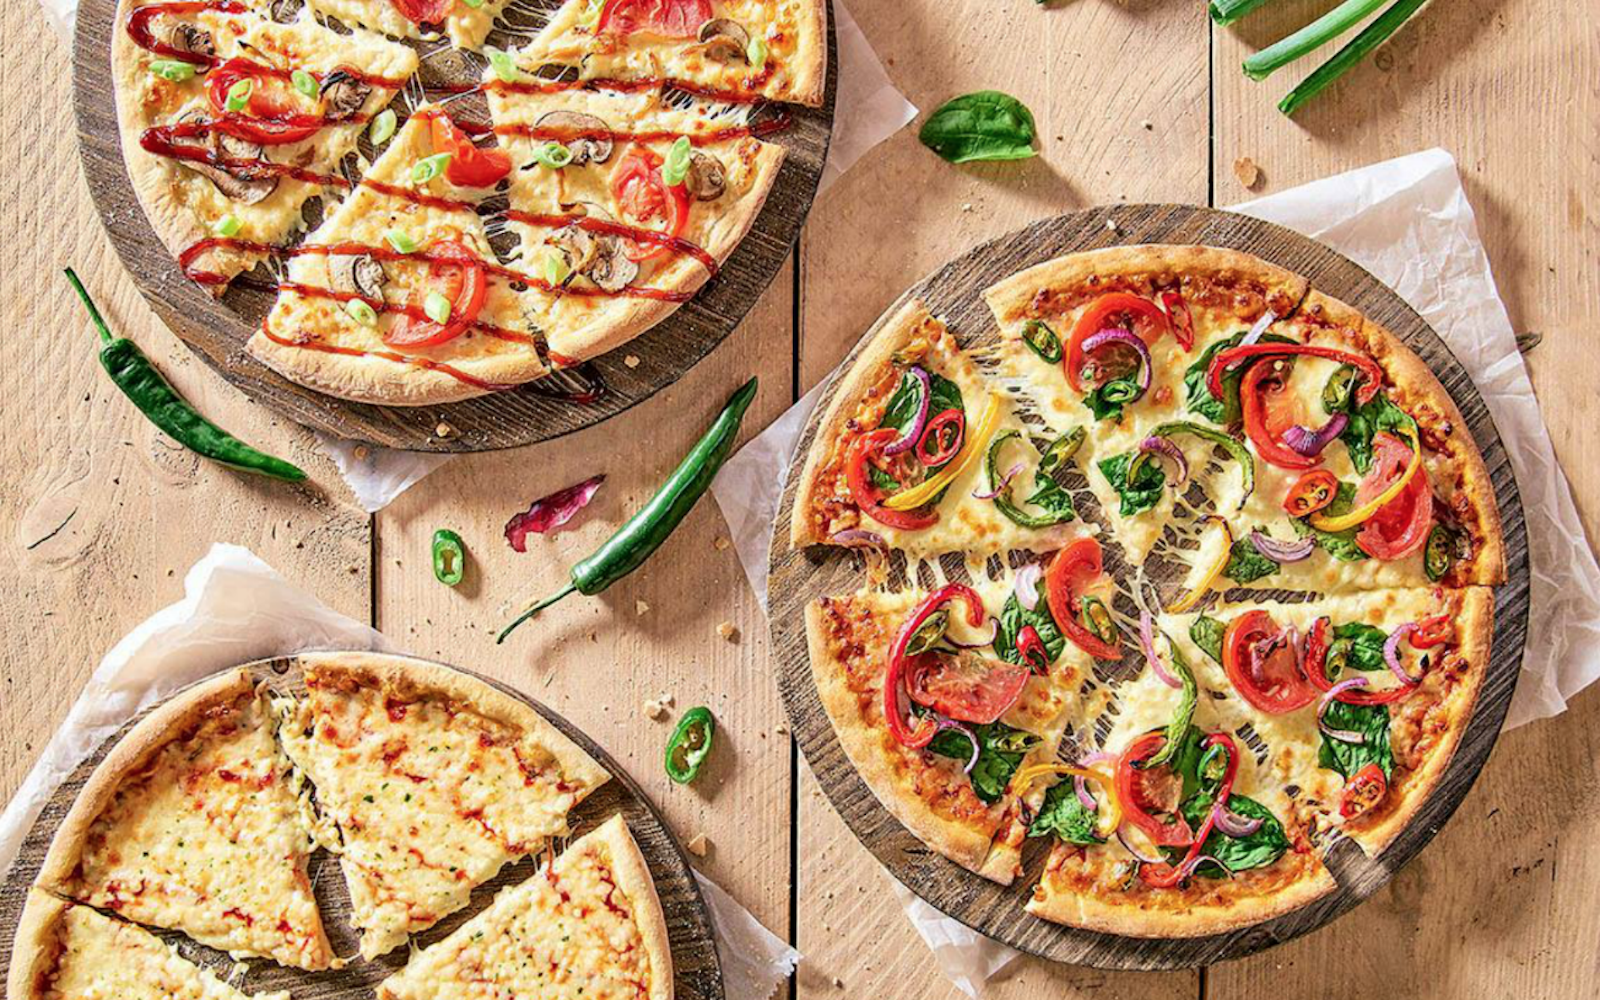 Domino S Launches 3 Vegan Pizzas In The Netherlands High Protein Vegetarian Recipes Vegetarian Recipes Healthy Easy Vegetarian Meals For Kids